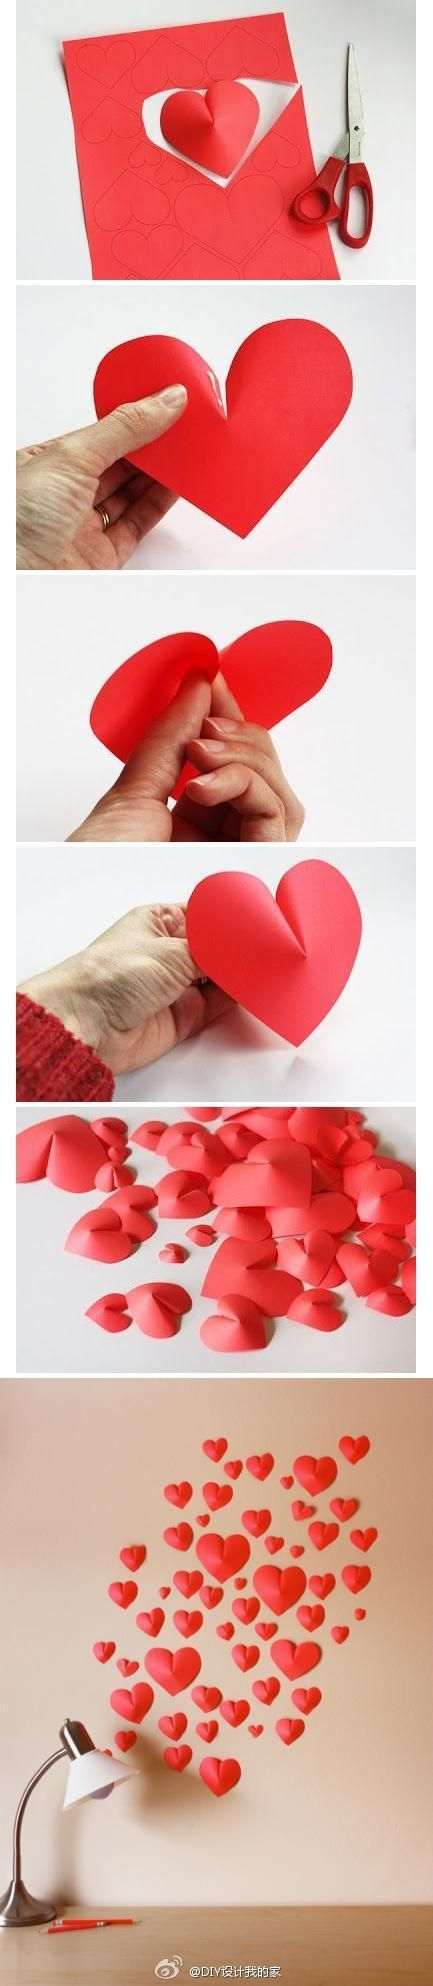 How to make 3D paper hearts.